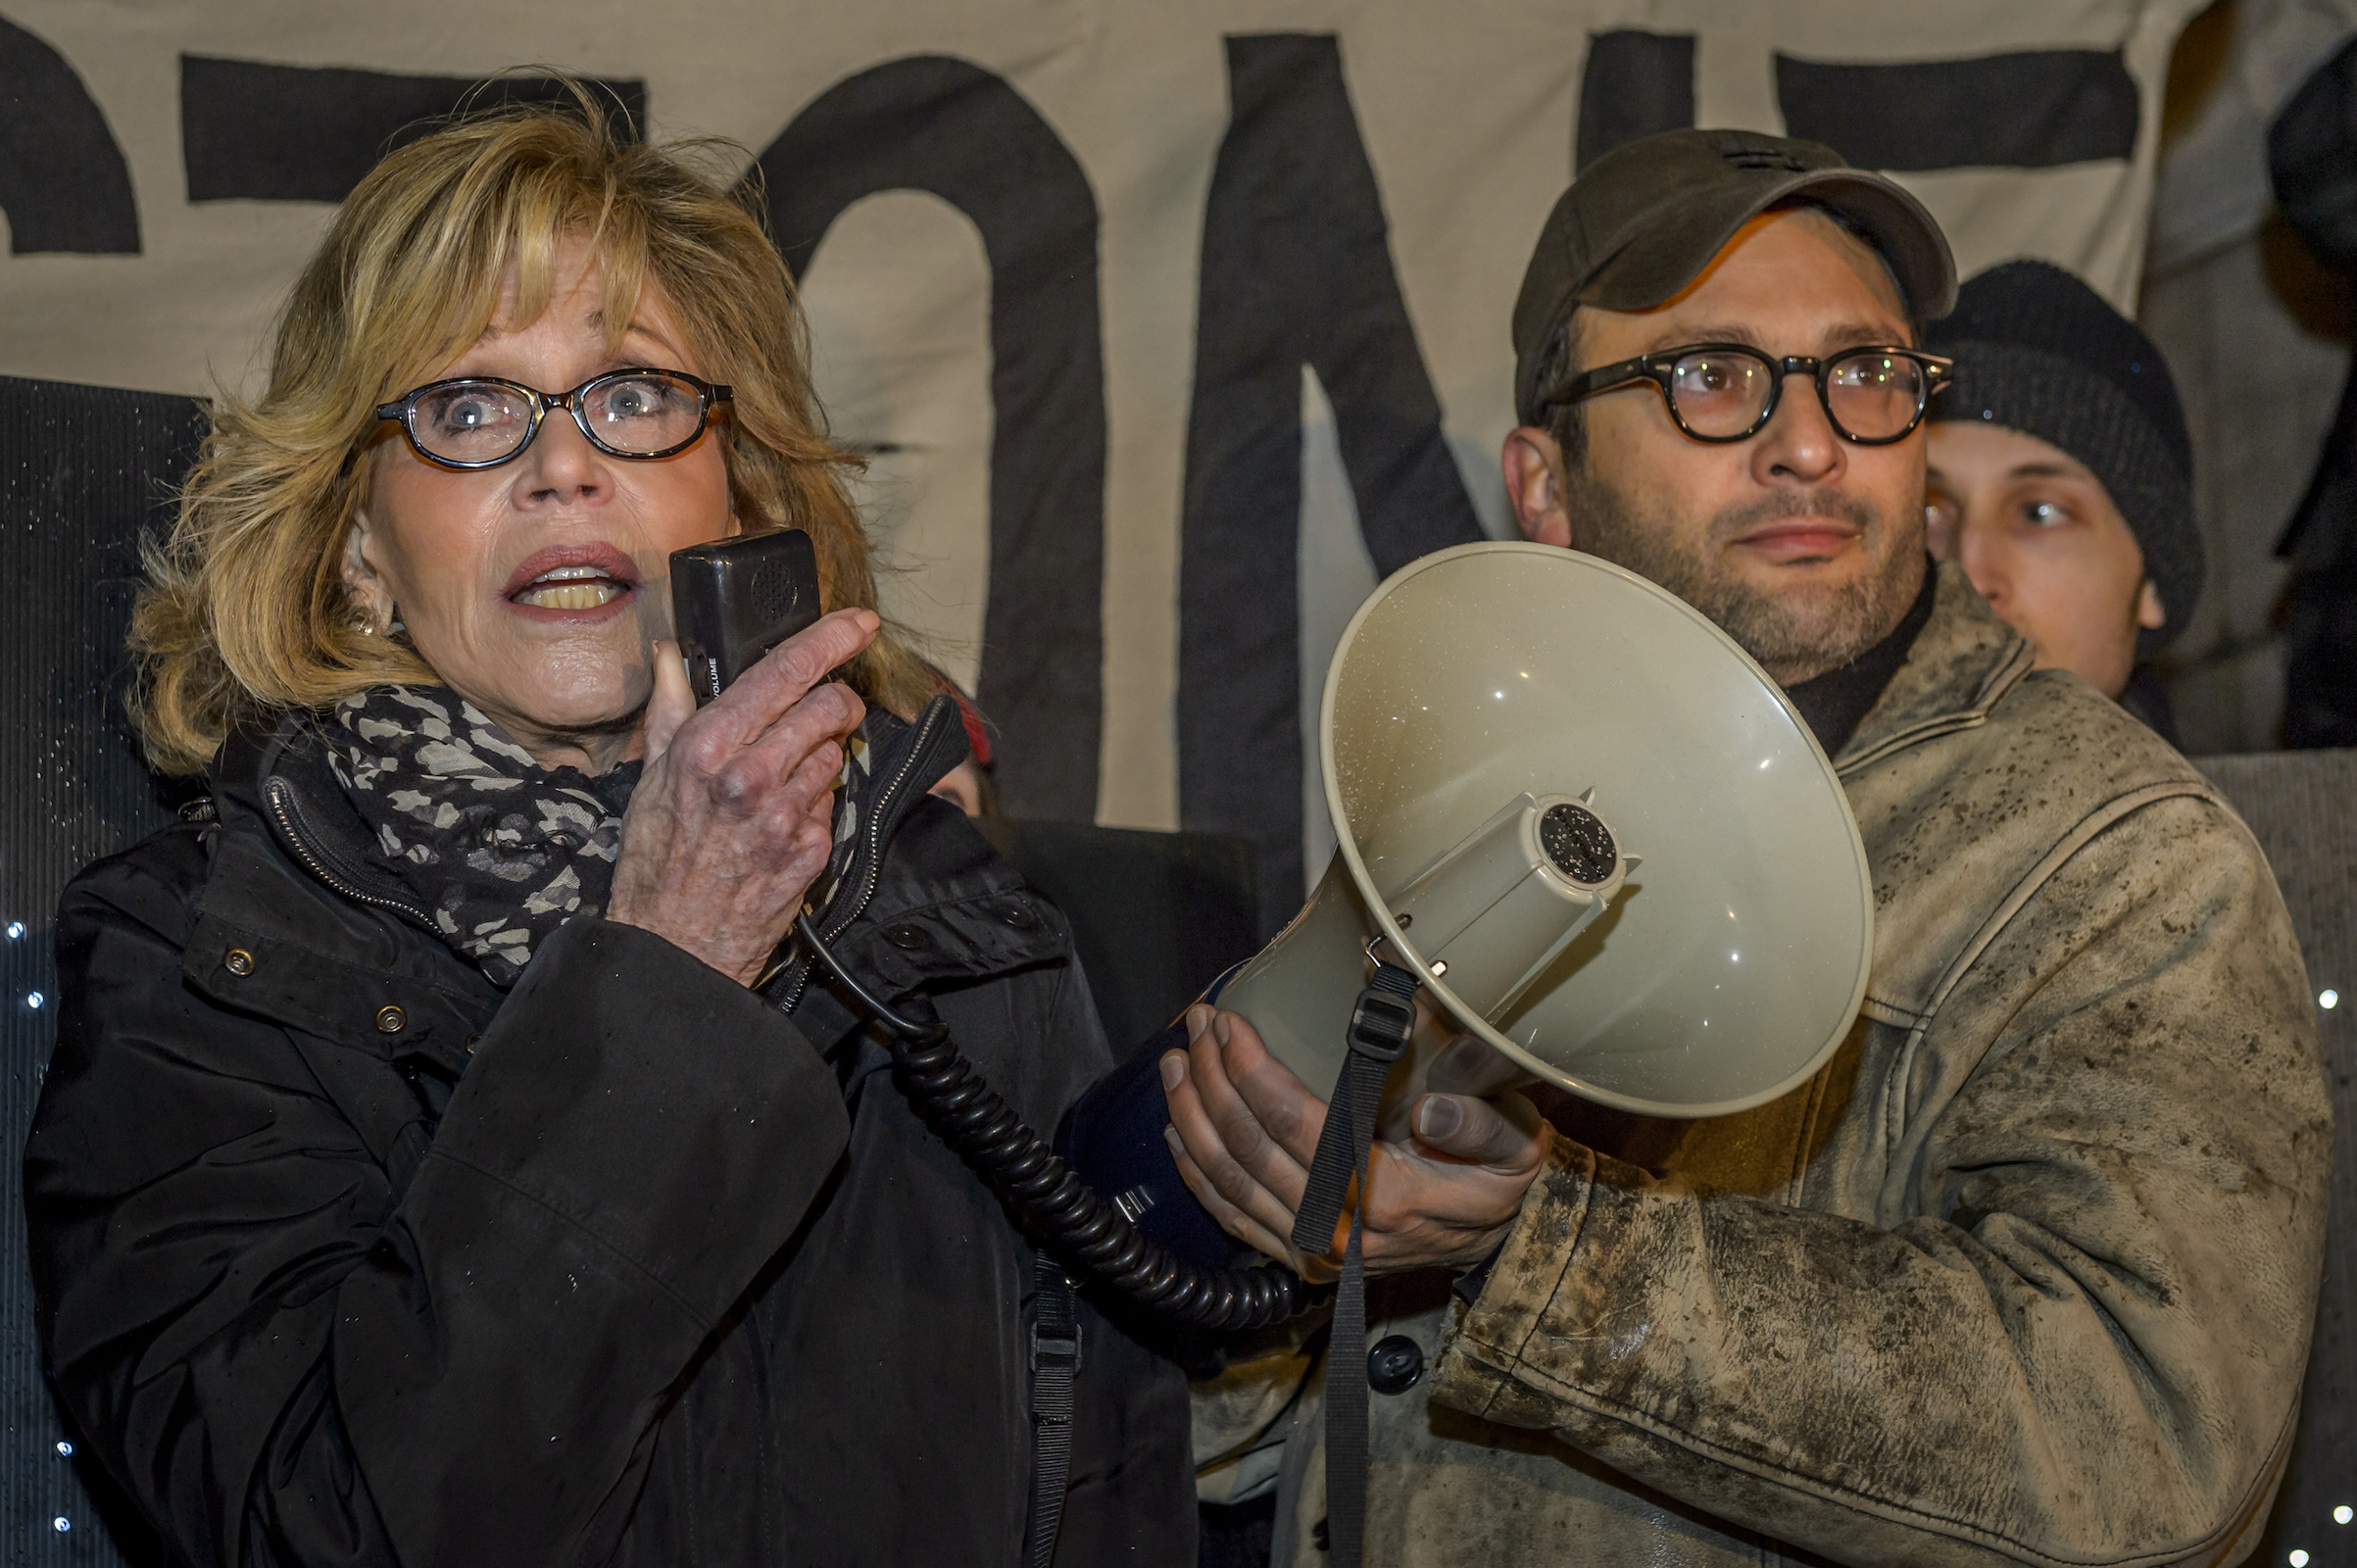 Two-time Academy Award winner Jane Fonda and Gasland Film director Josh Fox joined in the evening of Jan. 24, 2017, at Columbus Circle in New York City for a rally and march to Trump Tower in a massive peaceful protest after Trump signs orders to advance Keystone XL and Dakota Access Pipelines.